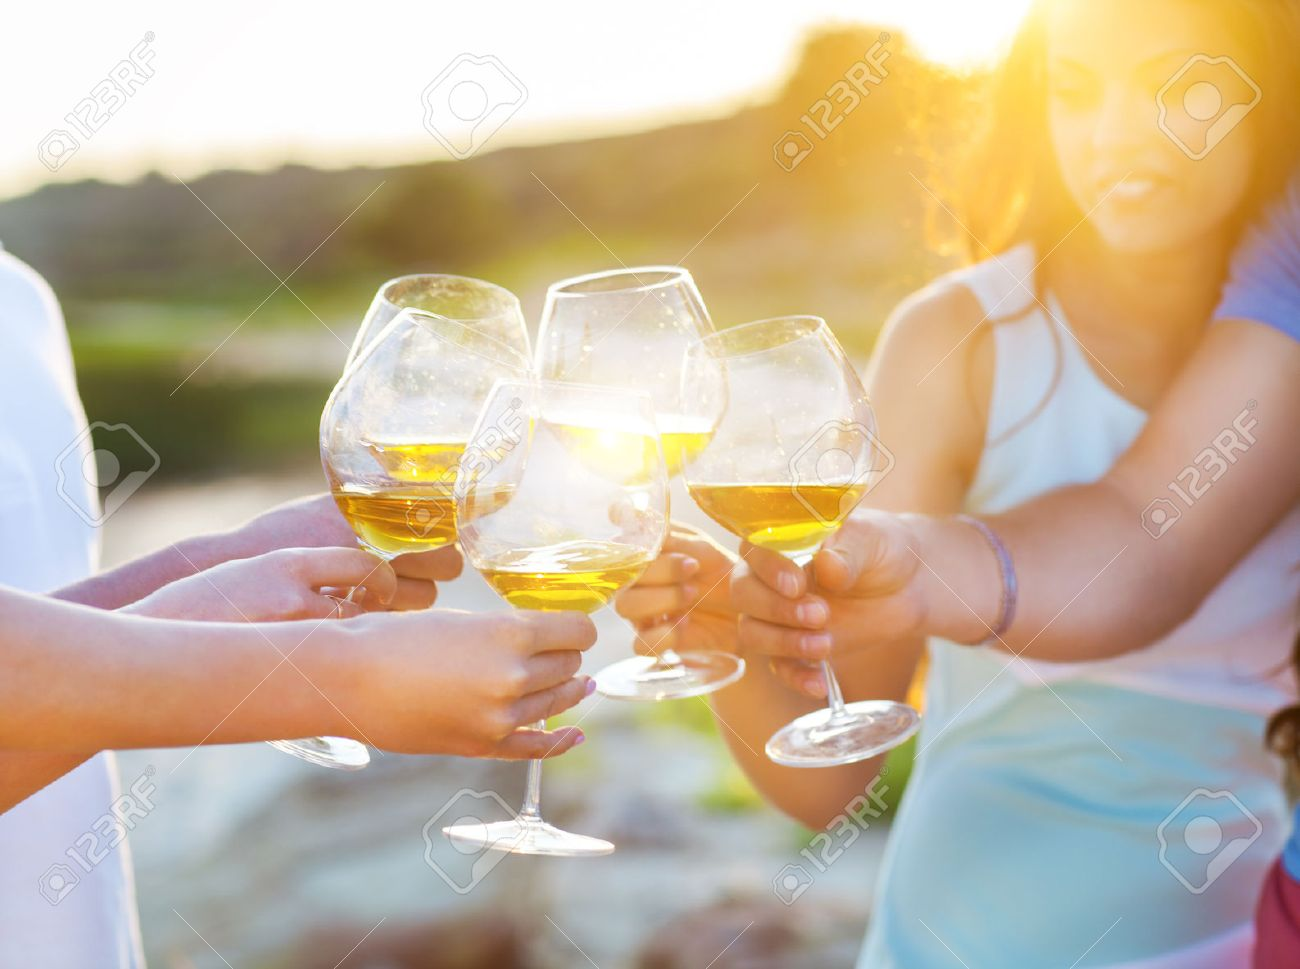 Celebration. People holding glasses of white wine making a toast. Sunset summer party - 52674474